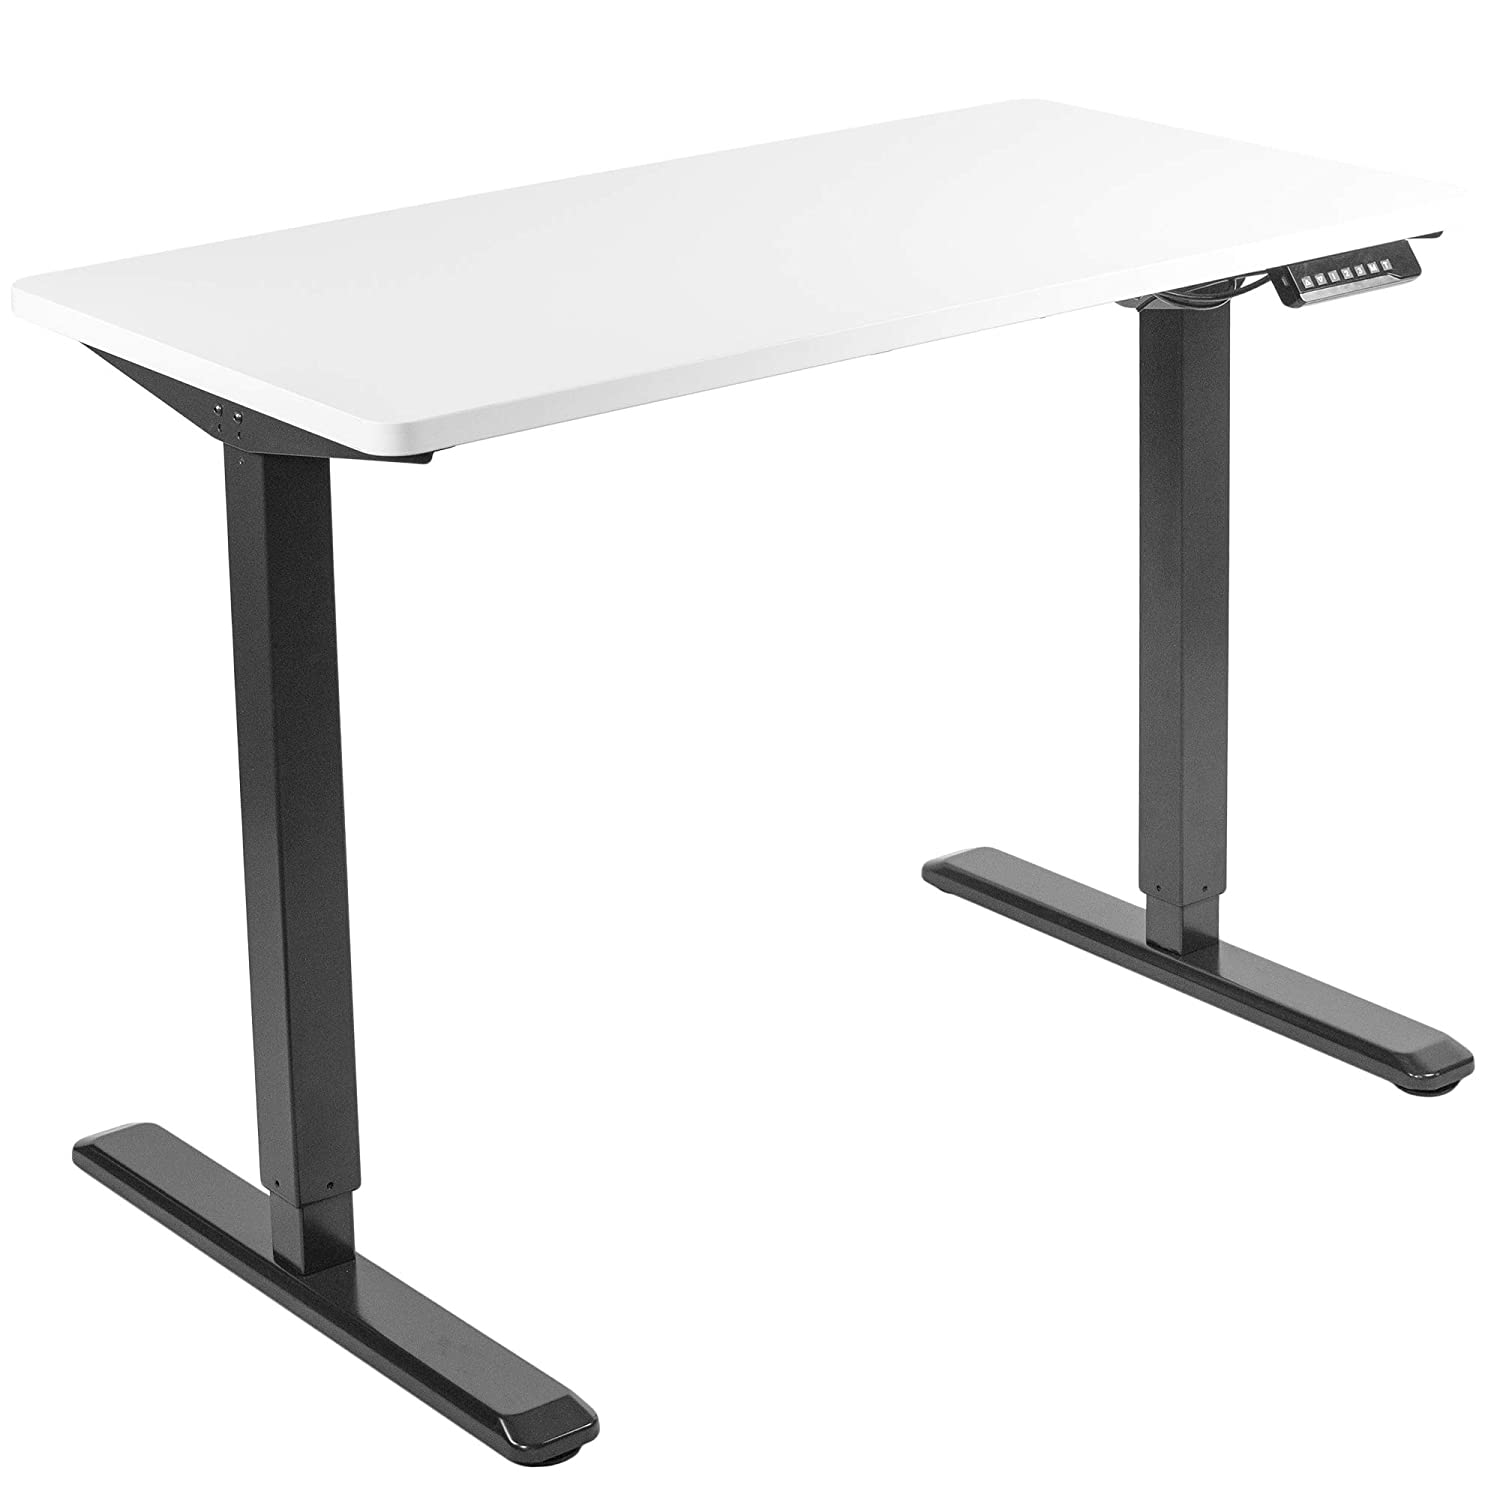 VIVO Electric 43 x 24 inch Stand Up Desk   White Table Top, Black Frame, Height Adjustable Standing Workstation with Memory Preset Controller (DESK-KIT-1B4W)